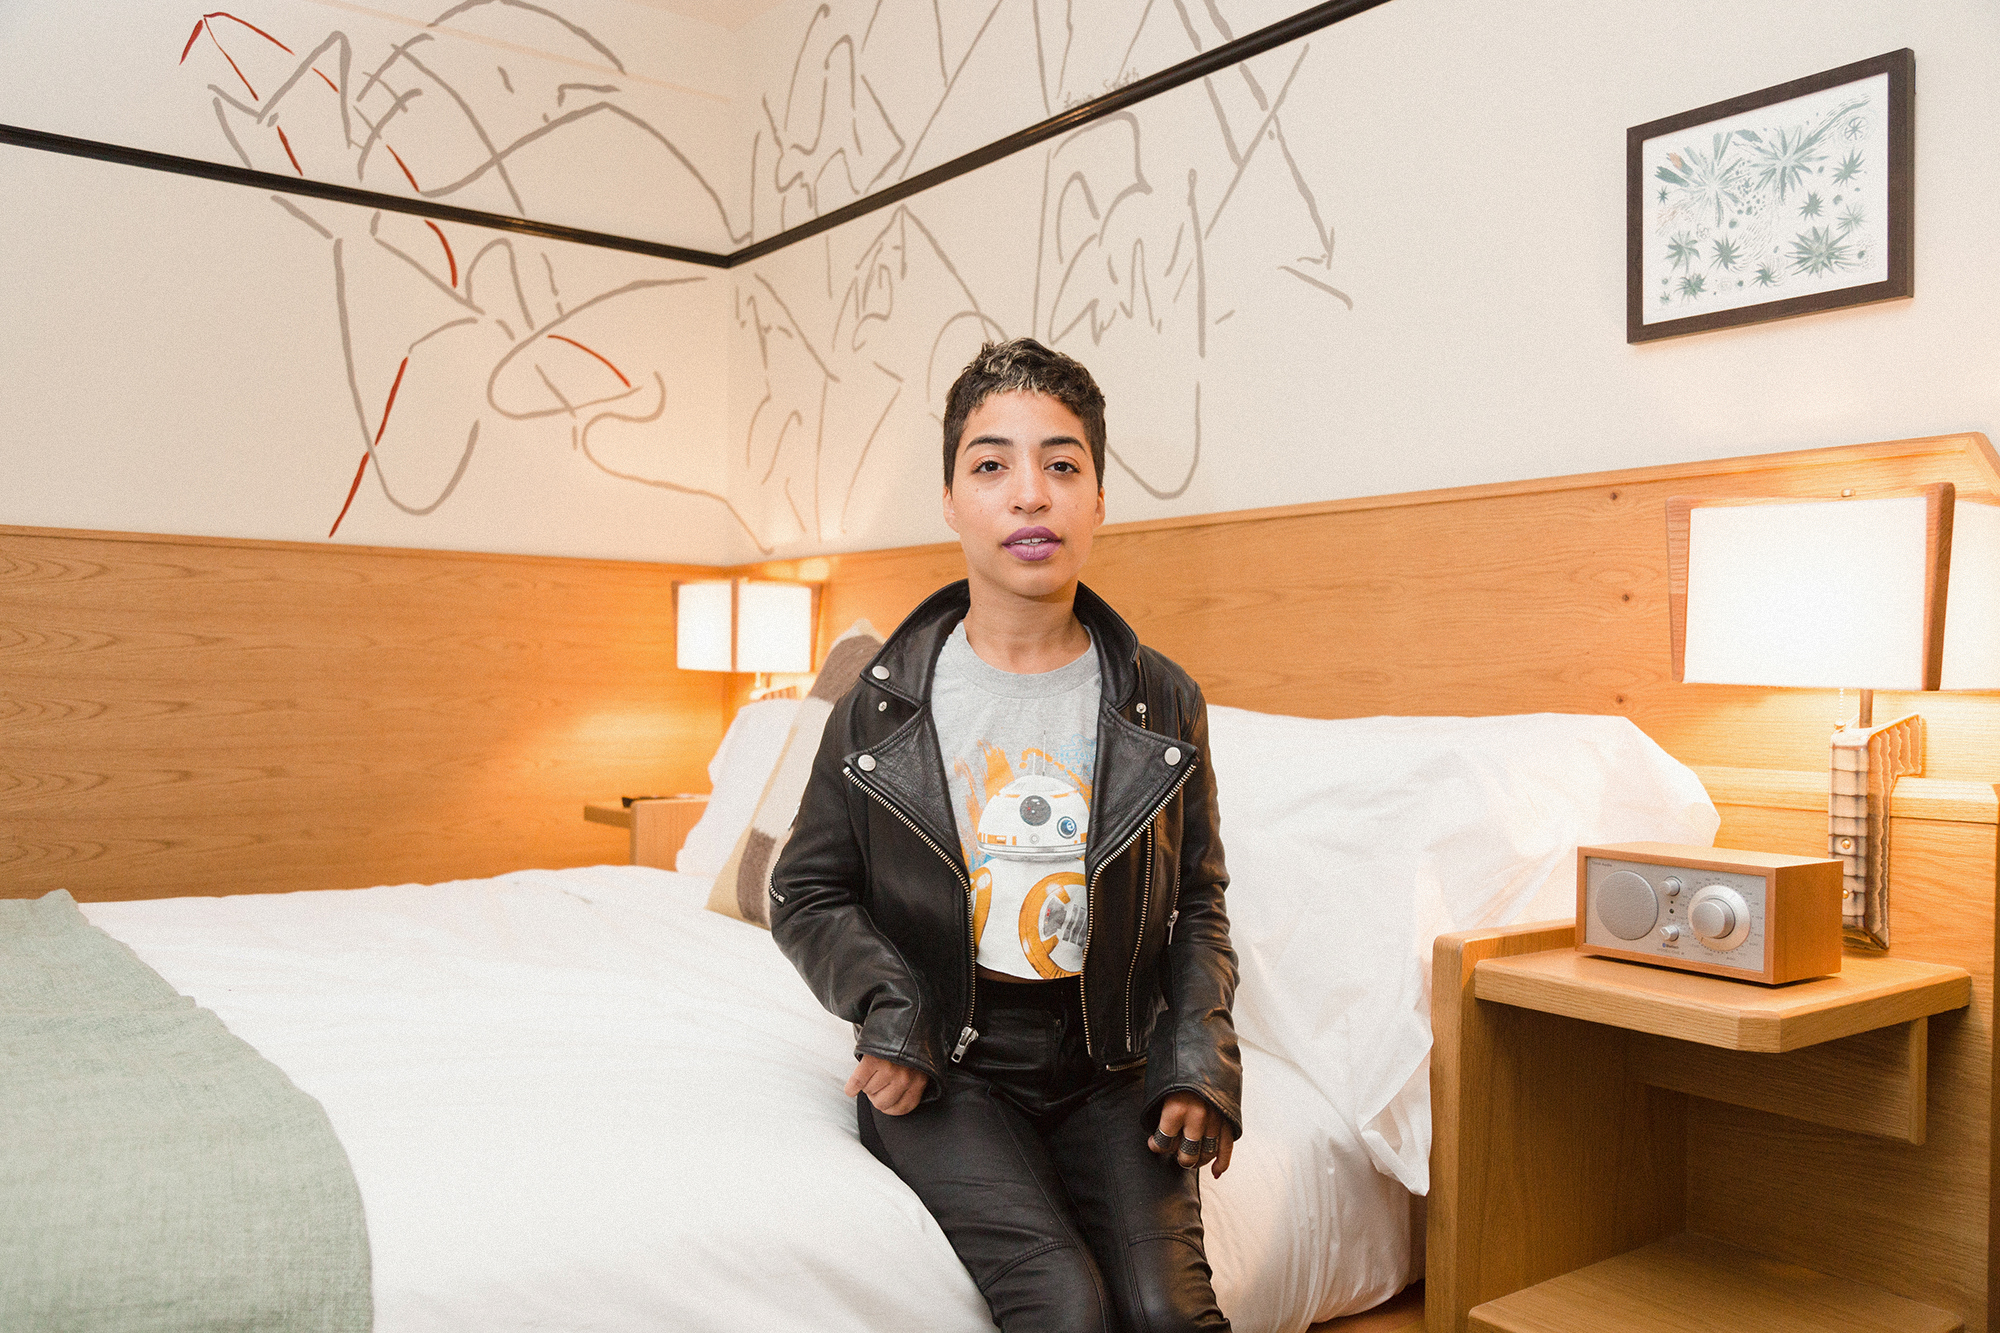 Jillian Mercado at Freehand Hotel